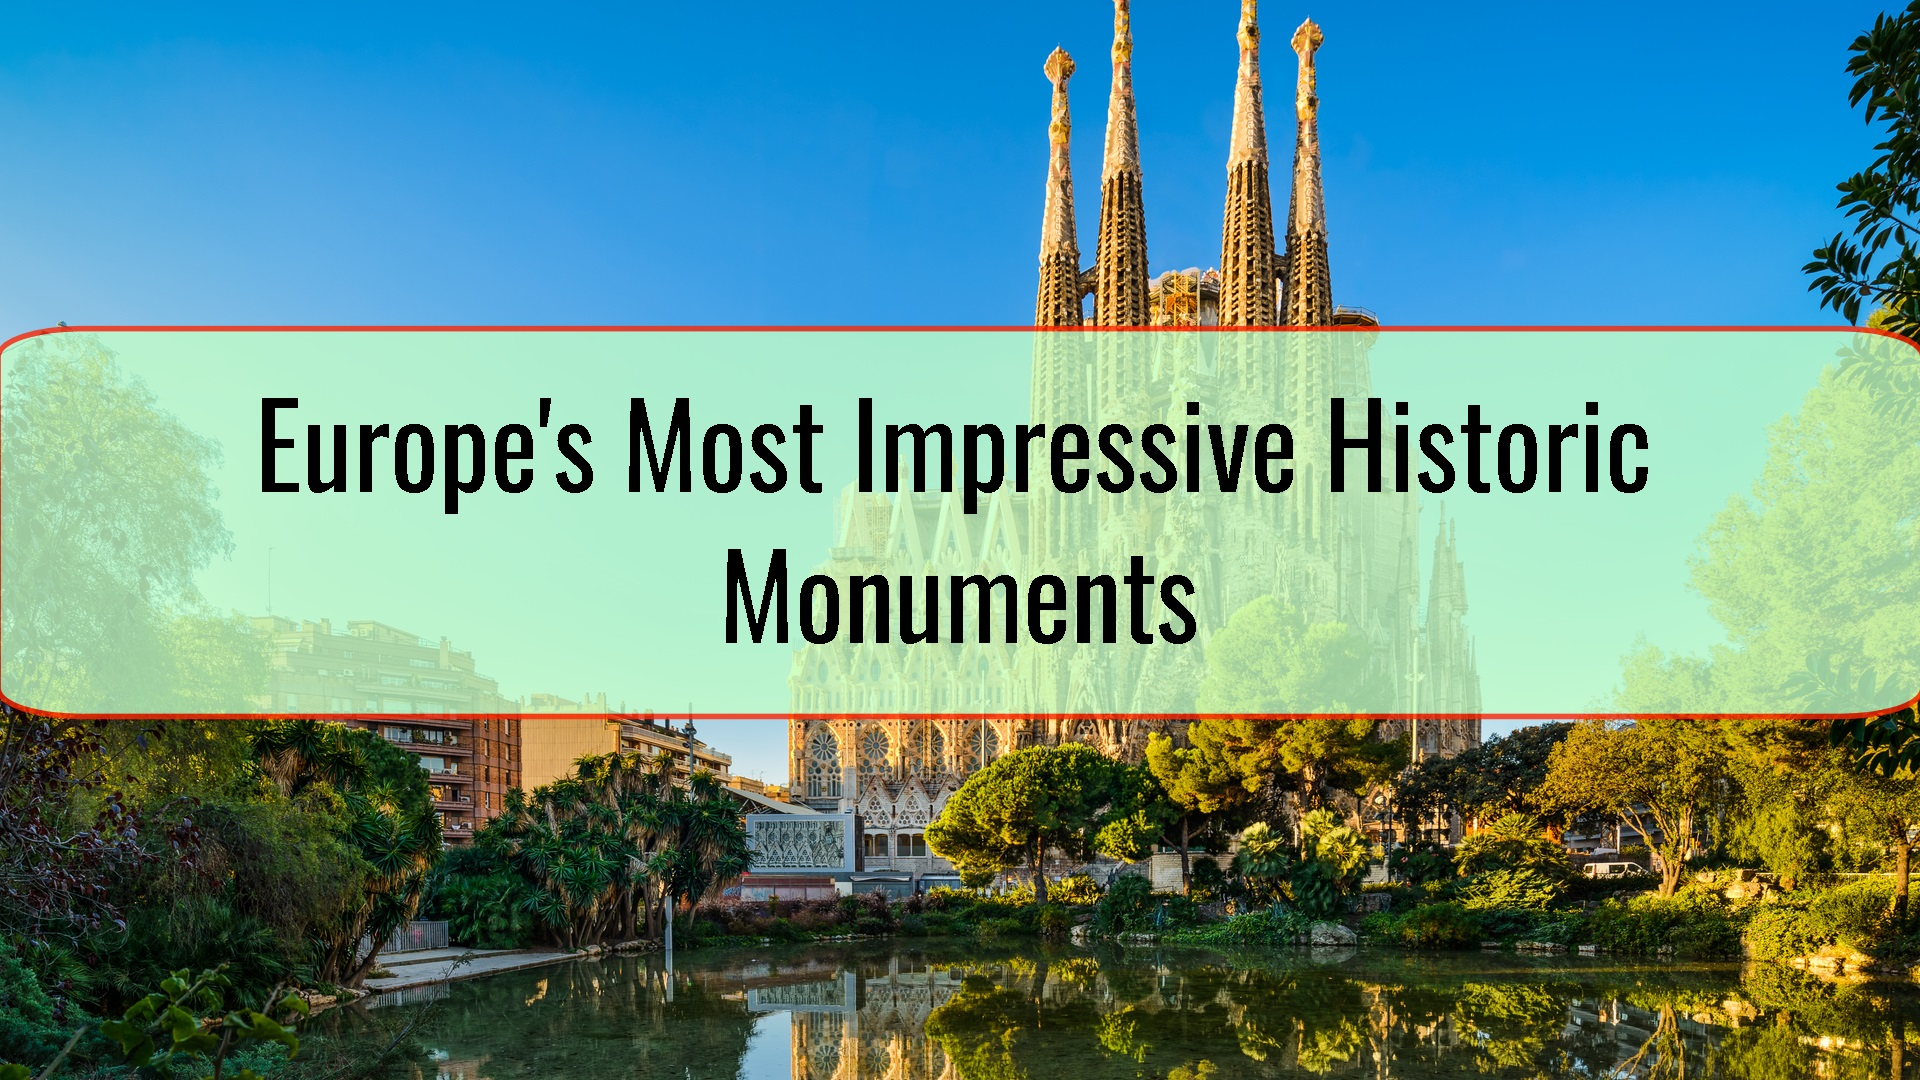 Europe's Most Impressive Historic Monuments